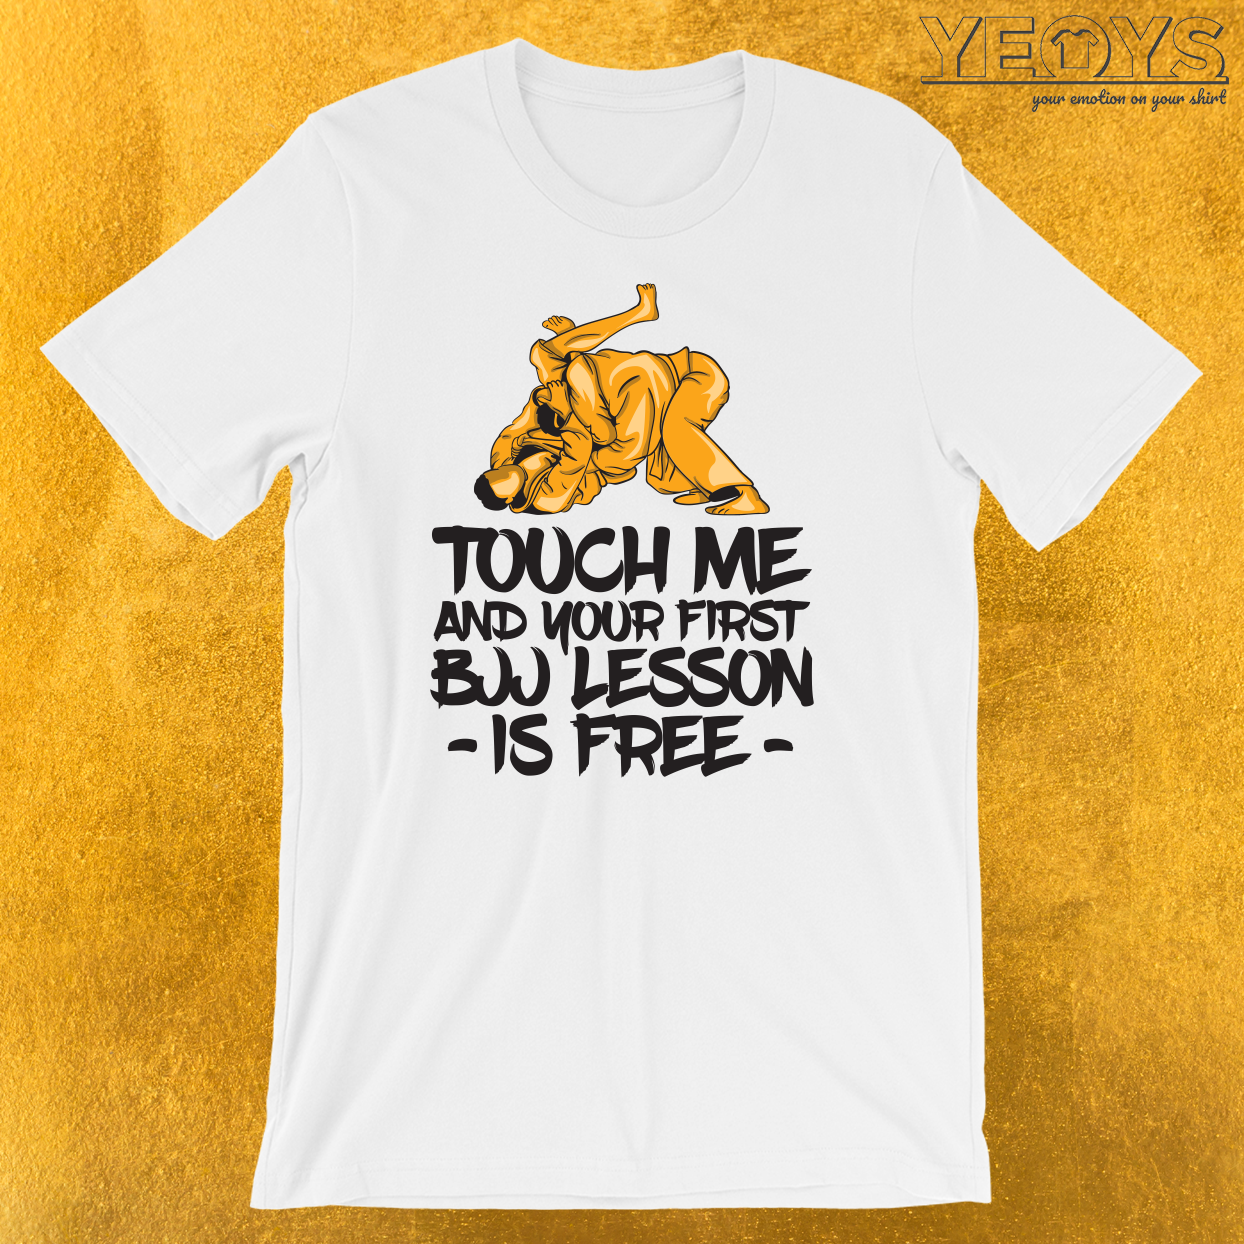 Touch Me And Your First BJJ Lesson Is Free T-Shirt